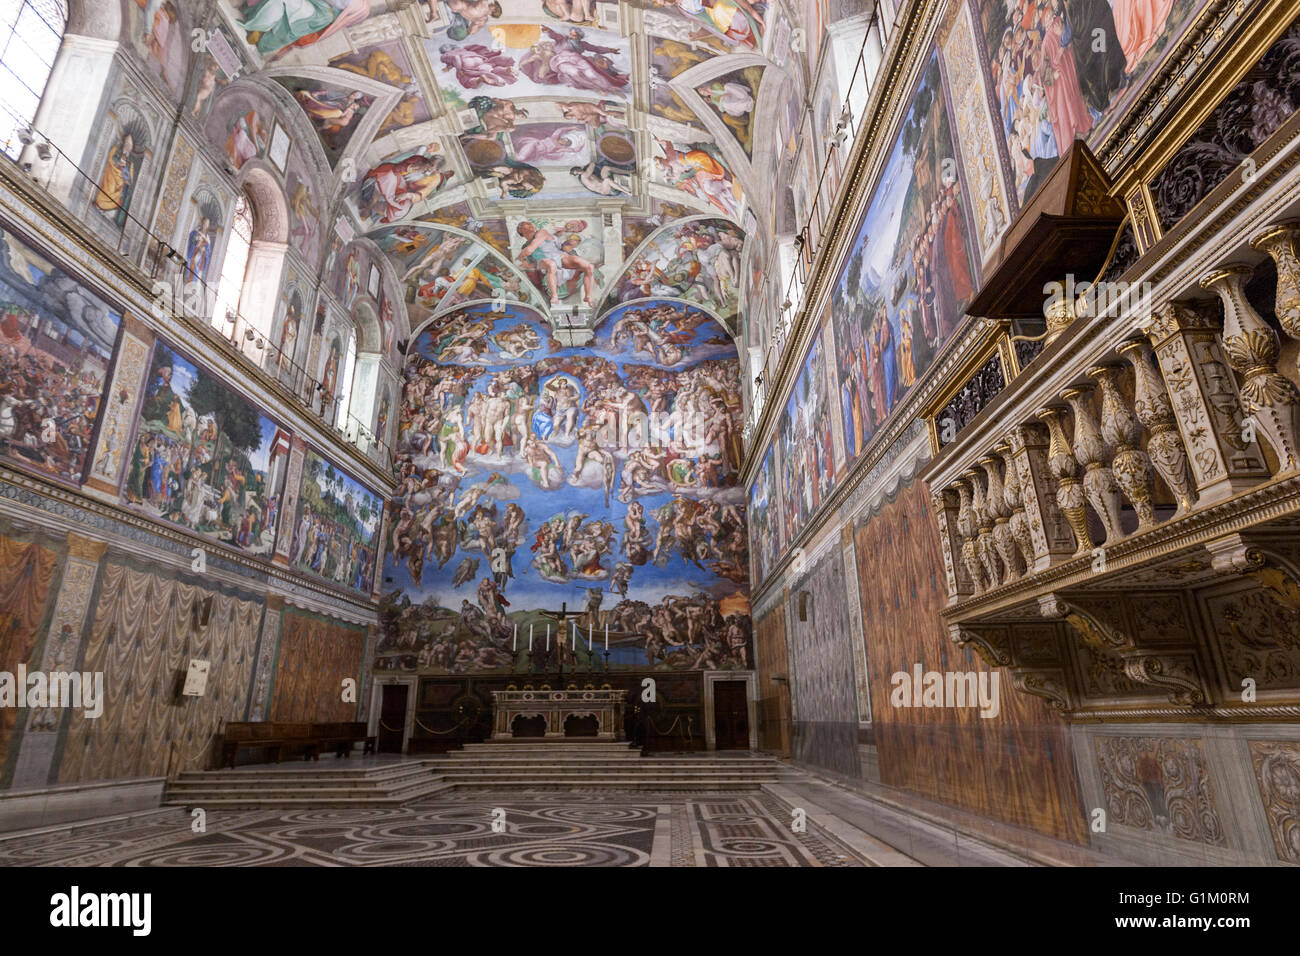 empty-the-sistine-chapel-ceiling-painted